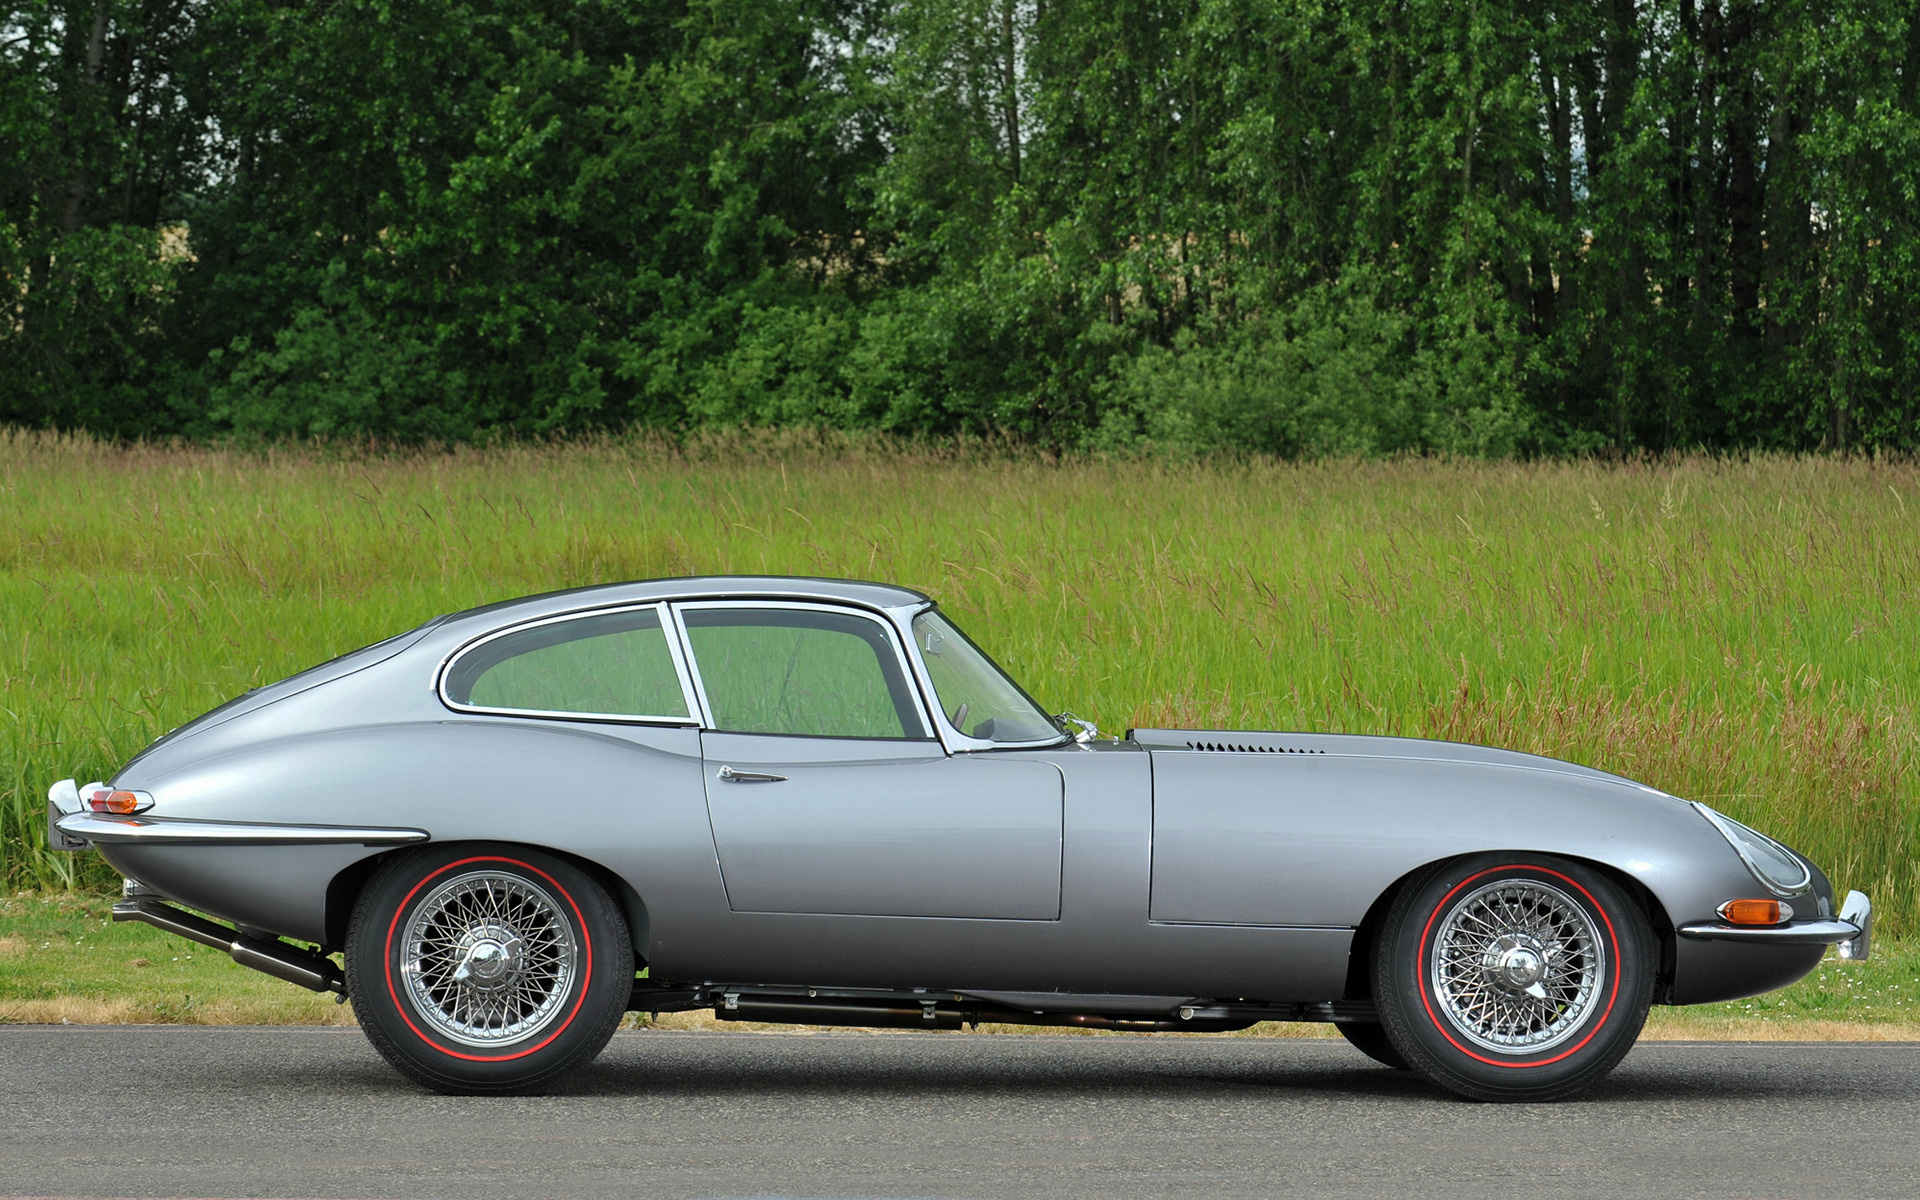 Jaguar e type fixed head coupe 1961 wallpapers and hd images car pixel - Jaguar e type fixed head coupe ...